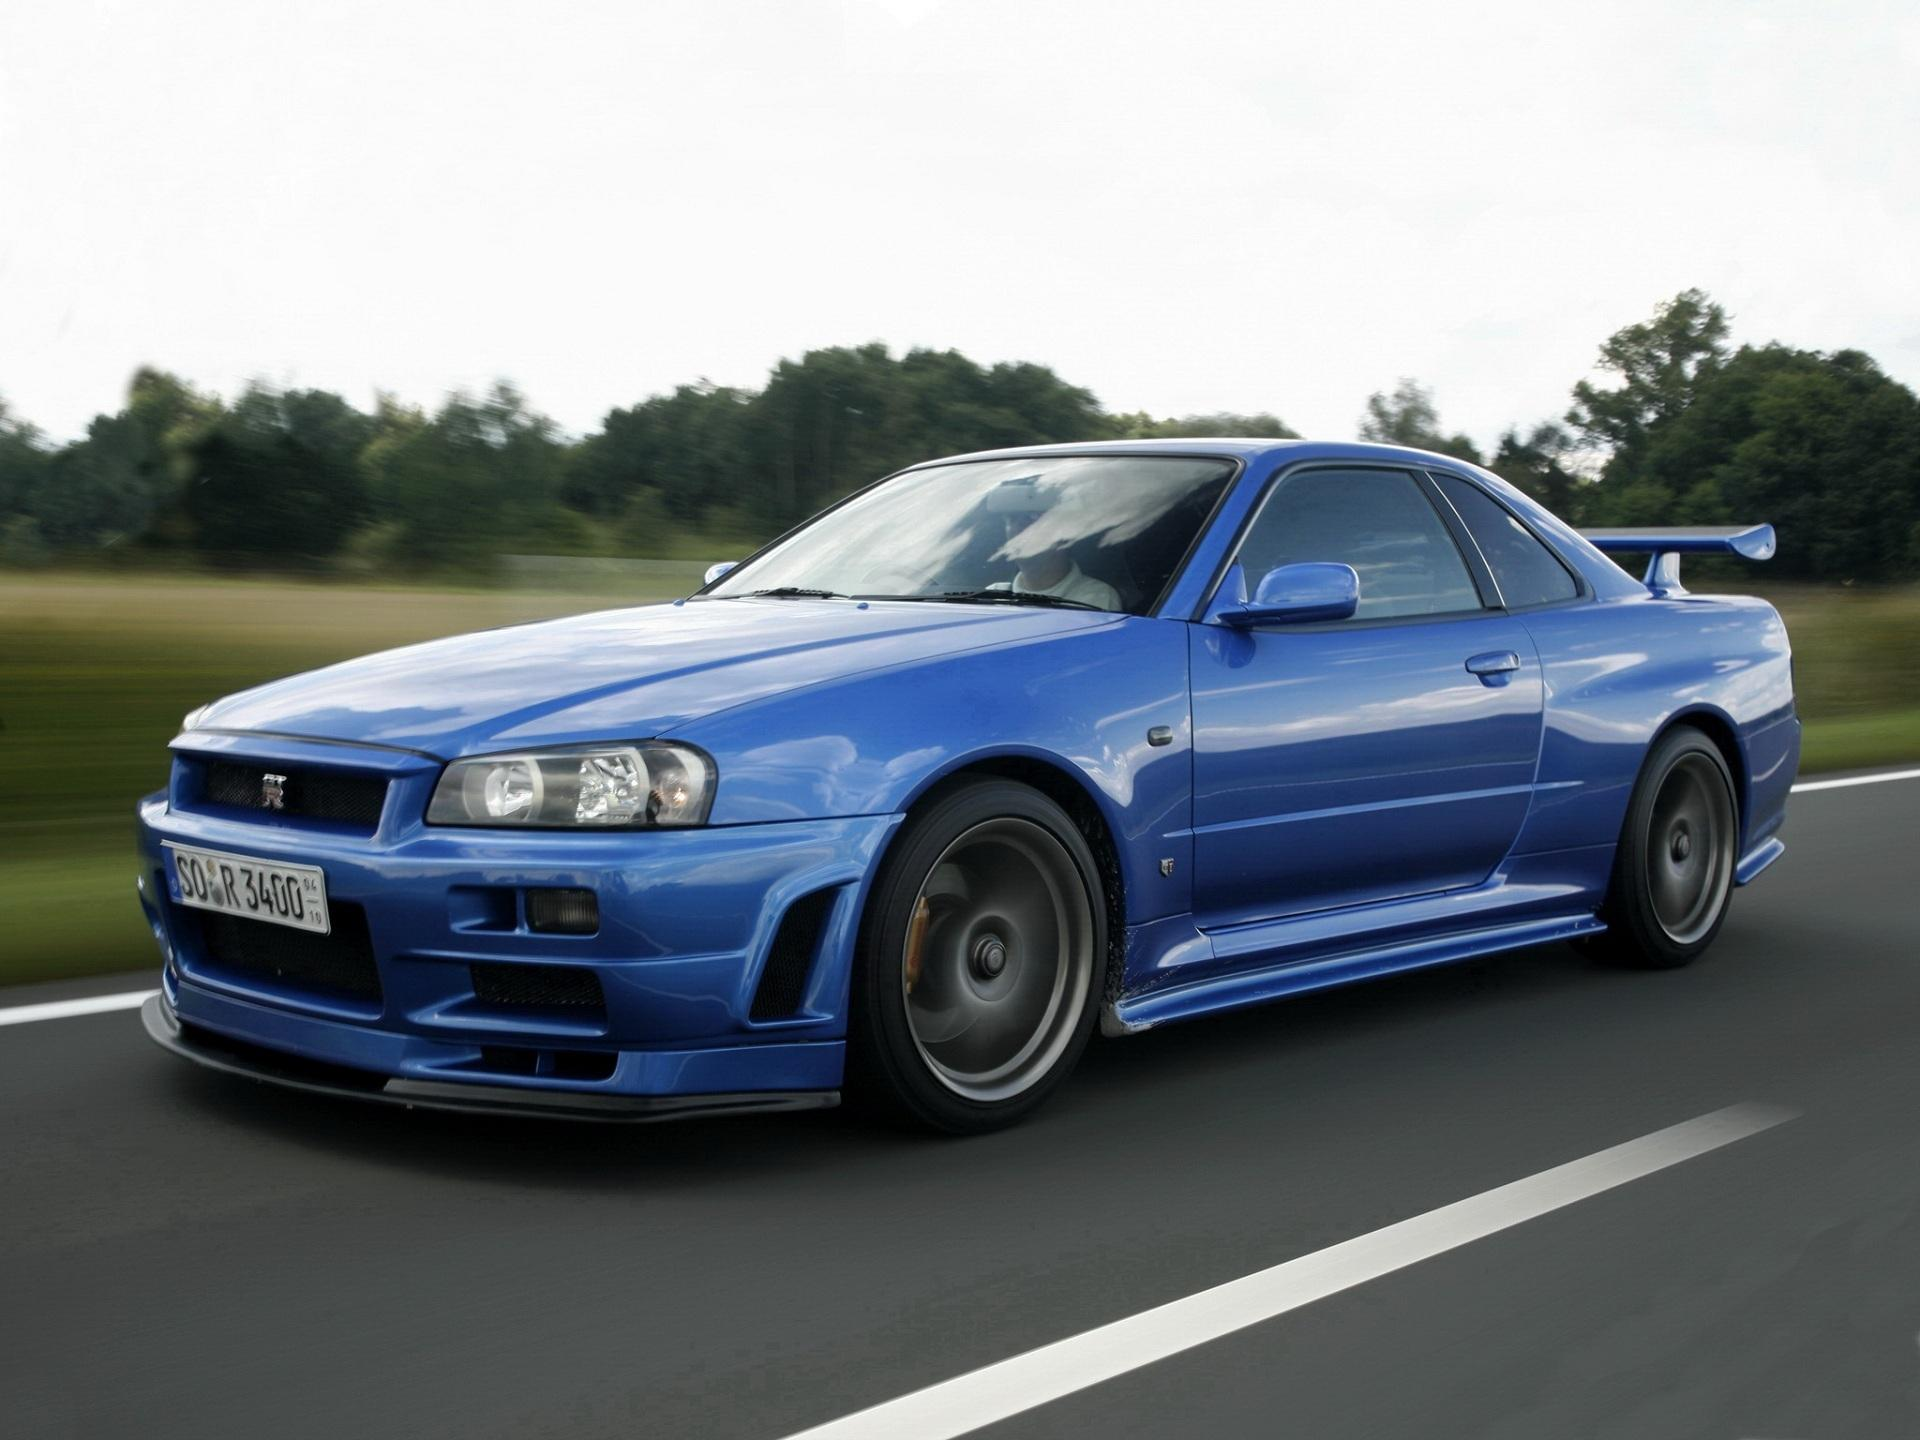 Wallpaper Top 10 JDM - Nissan Skyline GTR